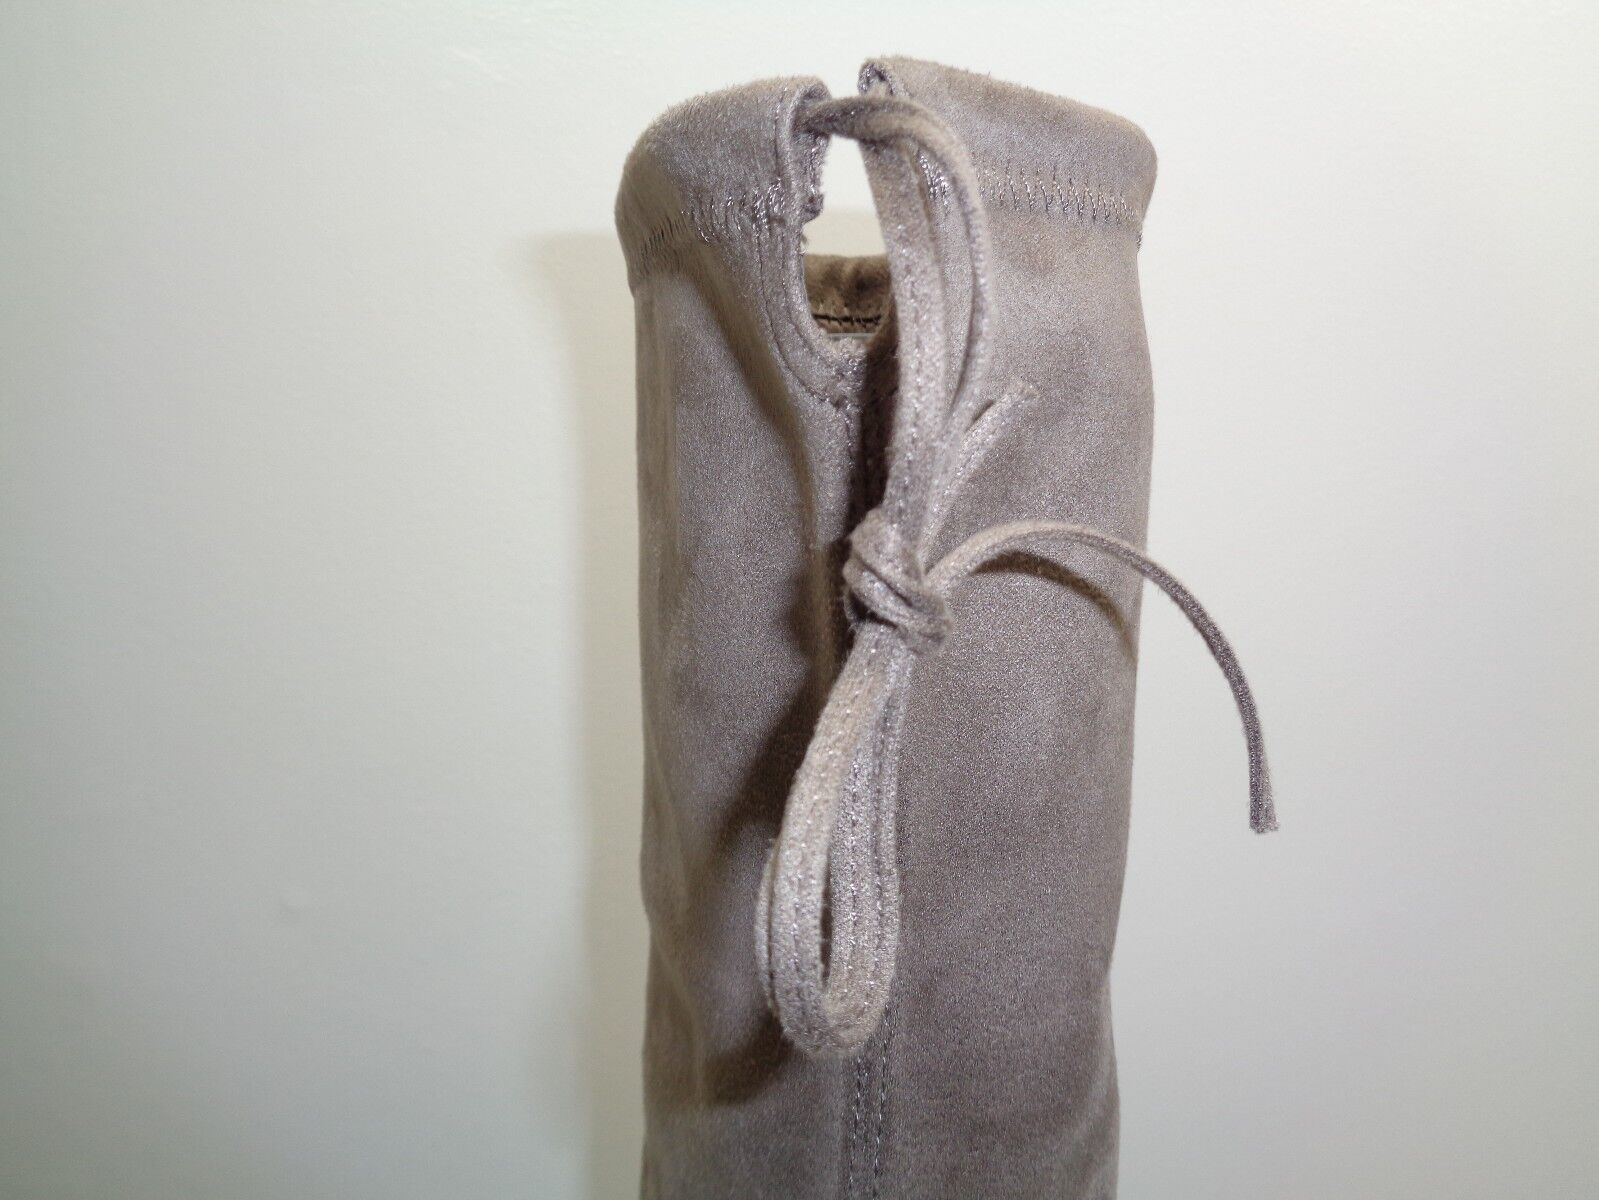 Steve Madden Sz 8.5 GORGEOUS Taupe Fabric Fabric Fabric Over Knee Heels Boots New Womens shoes 840cd9